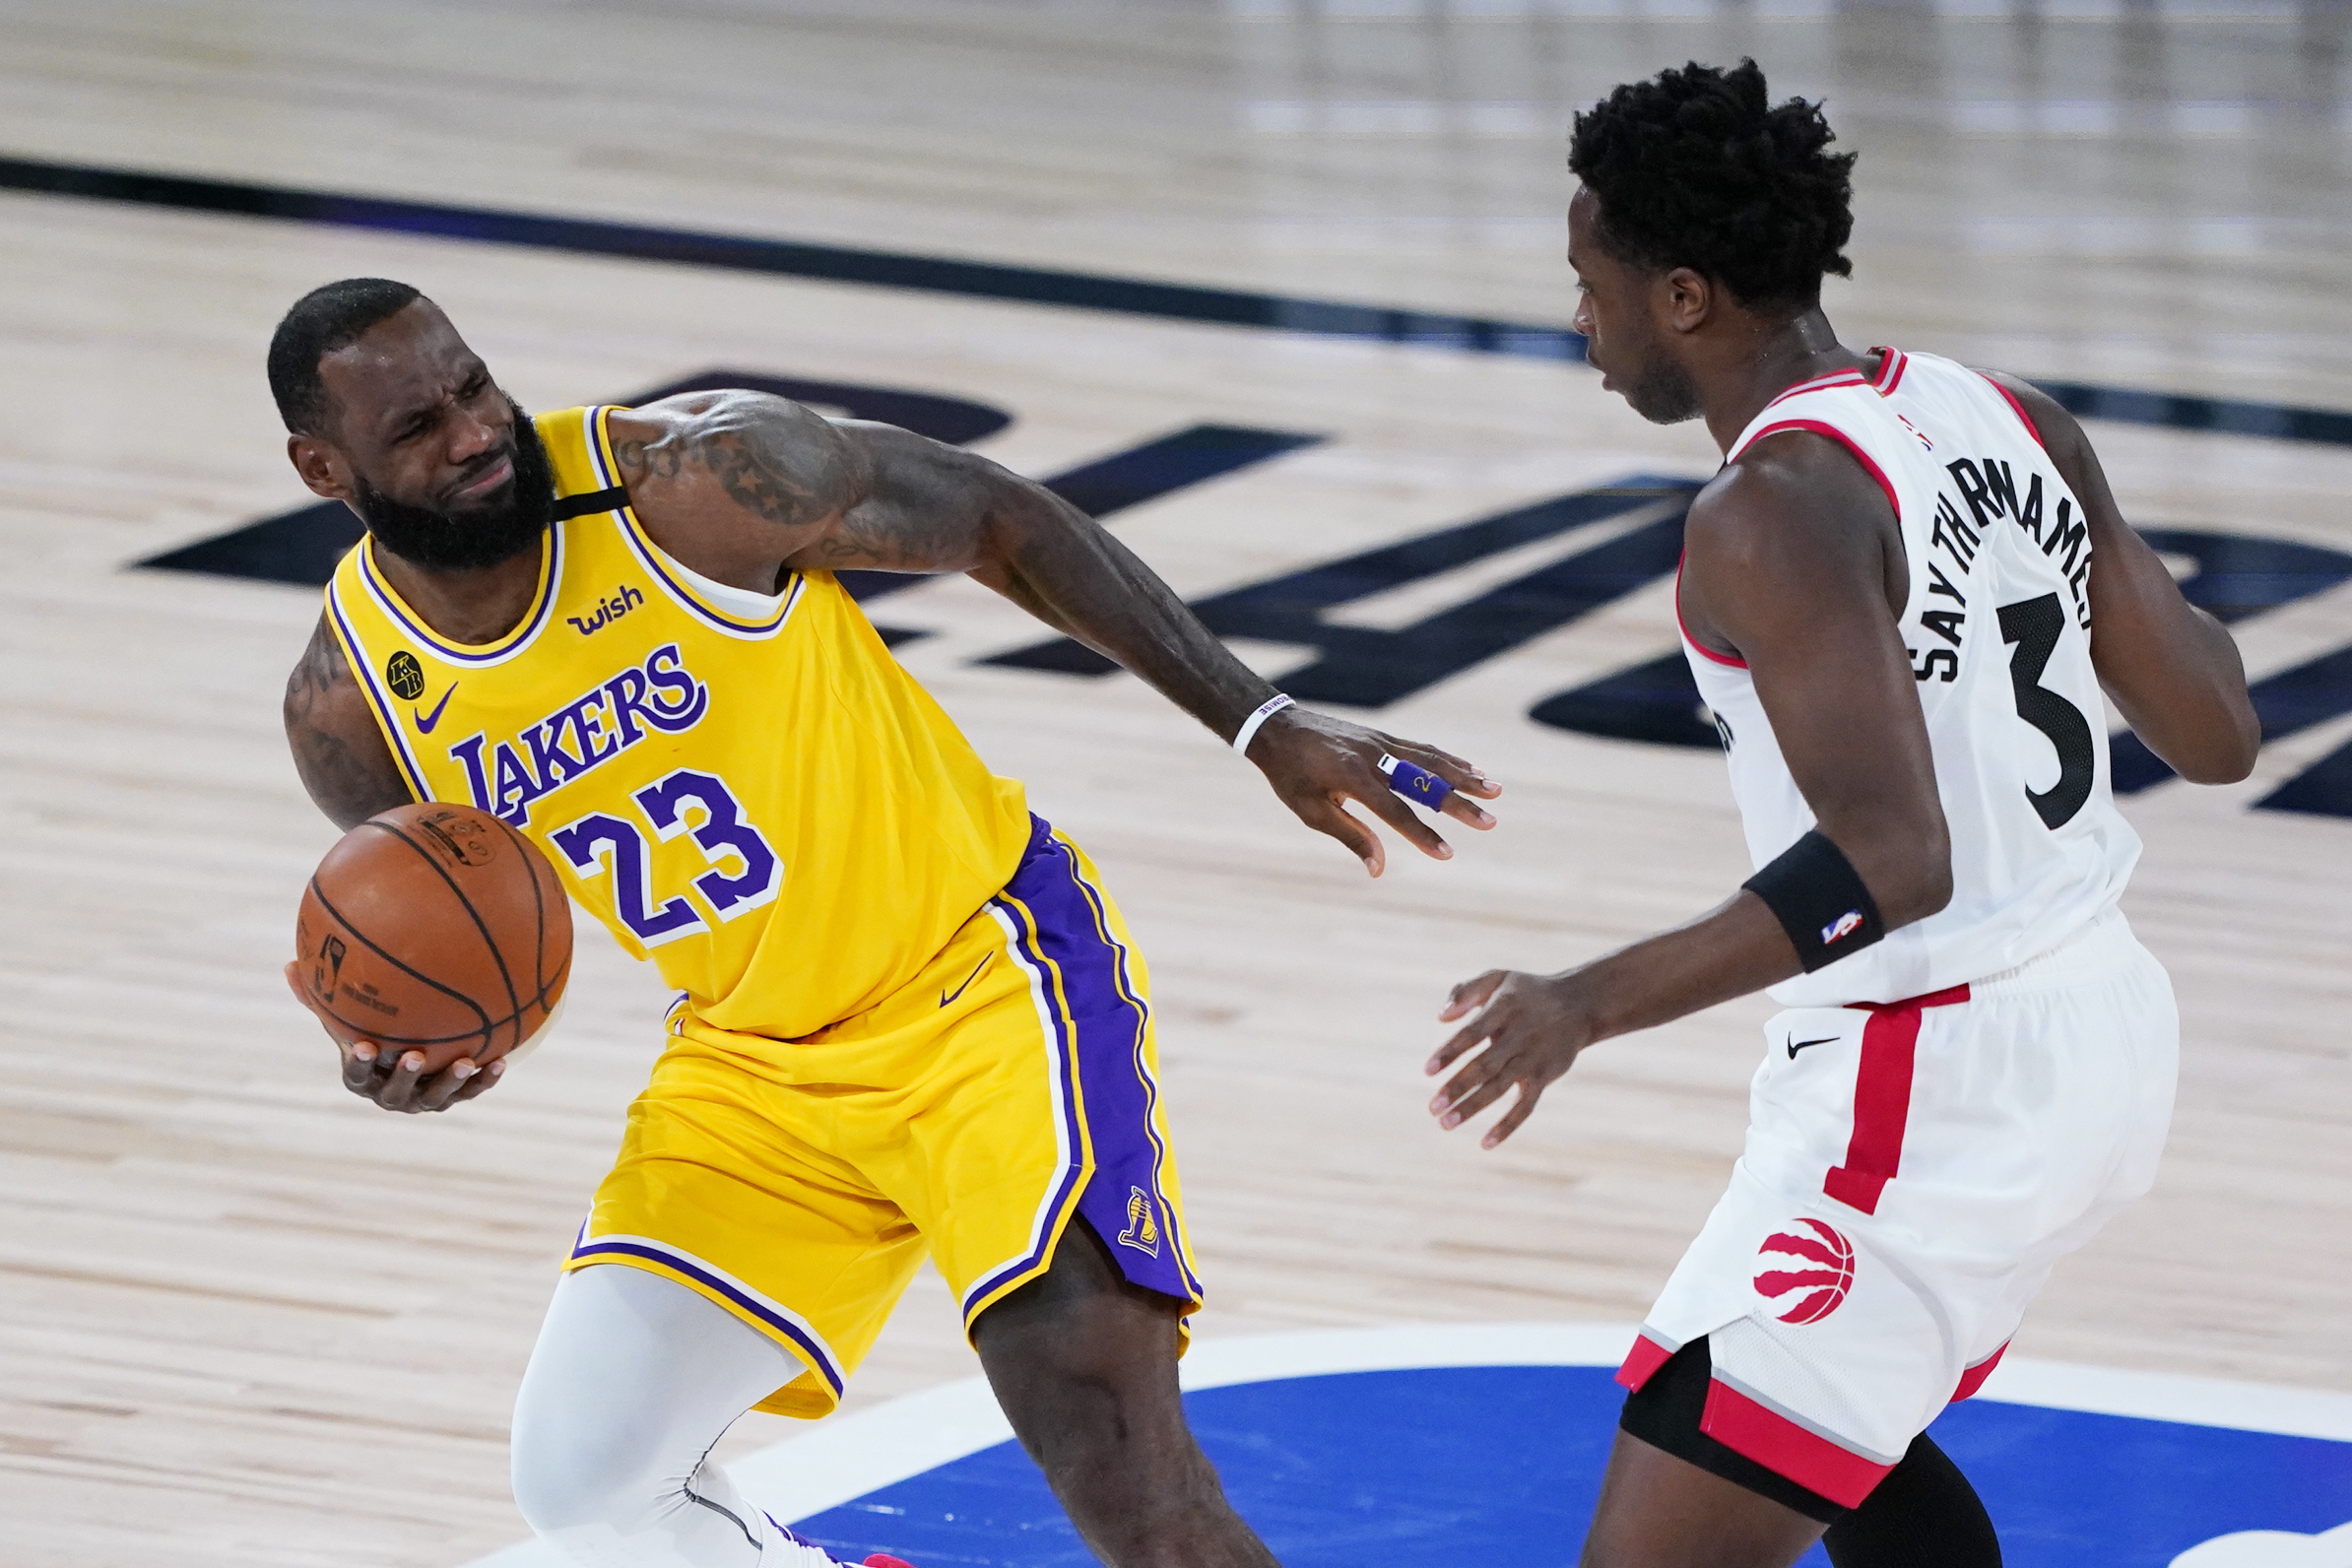 Nba S Top Stats Best Highlights Updated Playoff Picture From Aug 1 Results Bleacher Report Latest News Videos And Highlights